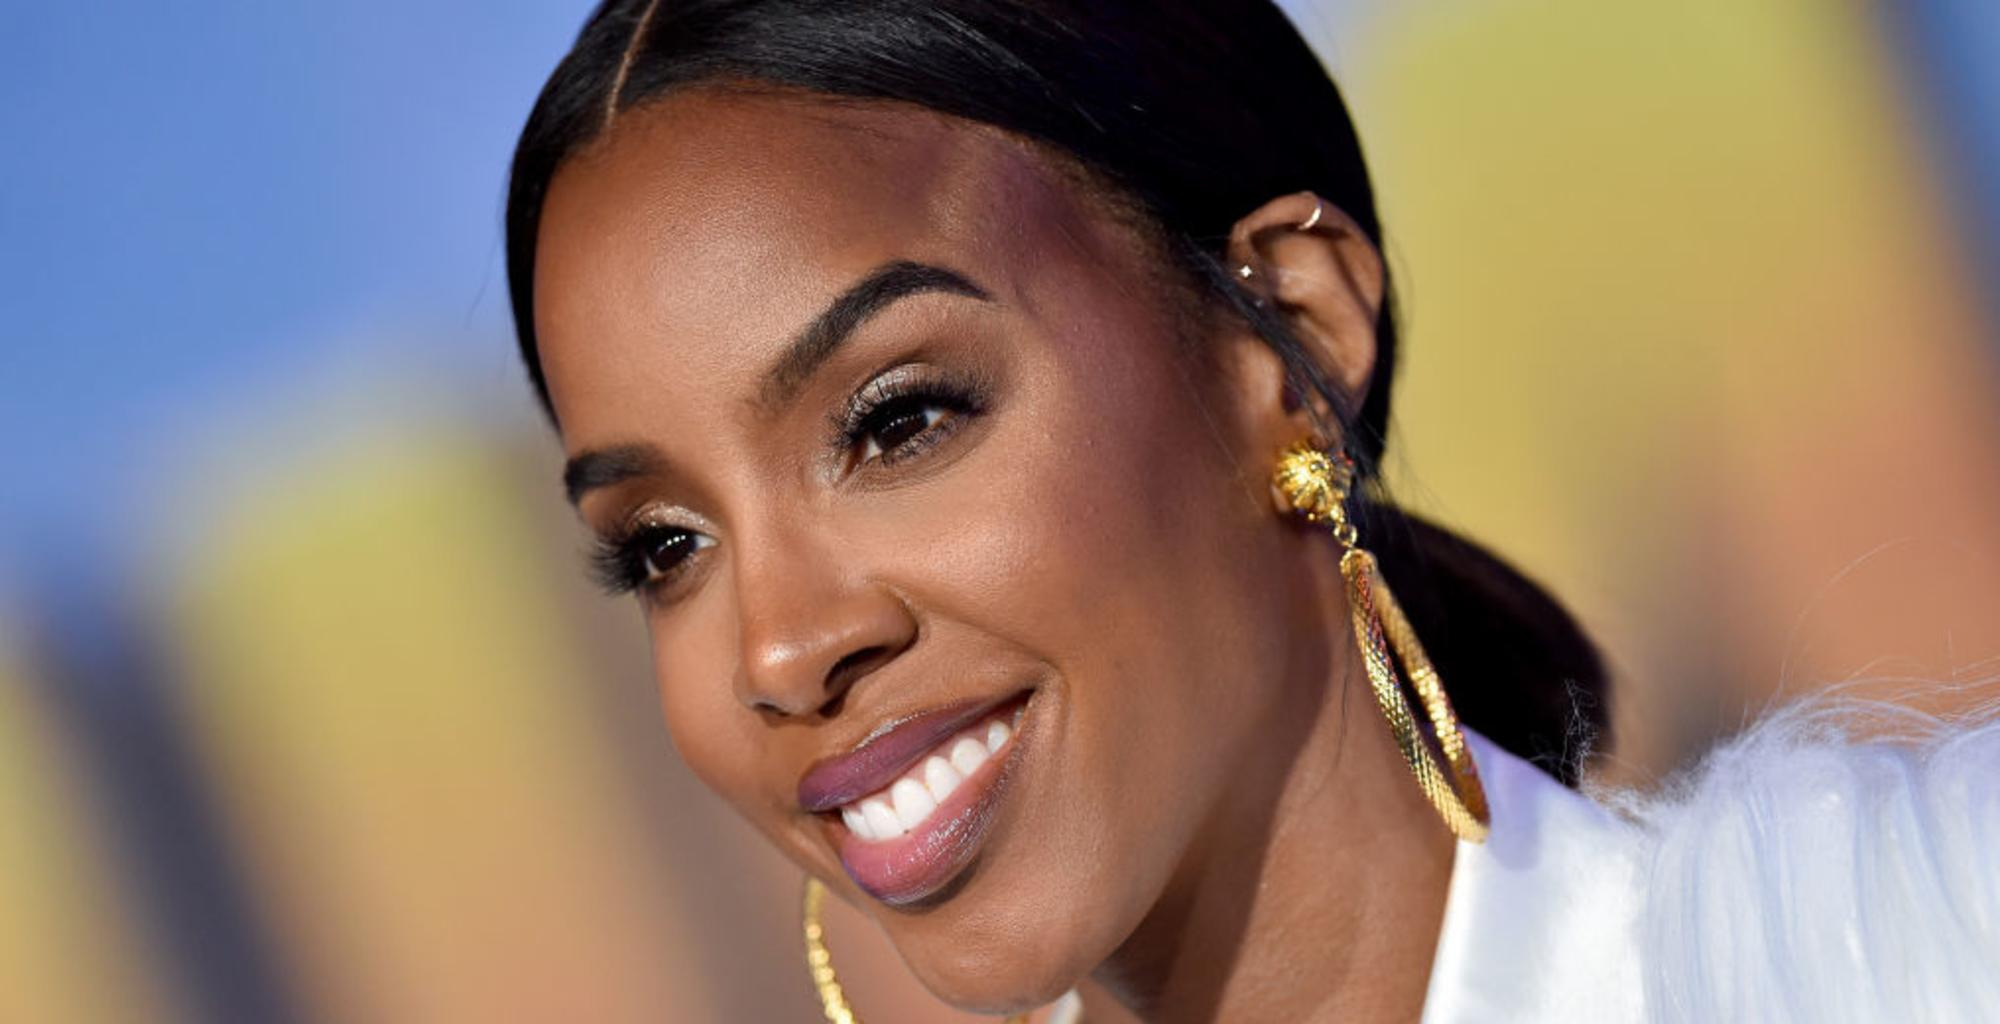 Kelly Rowland Says She's Having A Hard Time Wanting To Watch The Britney Spears Documentary - Here's Why!